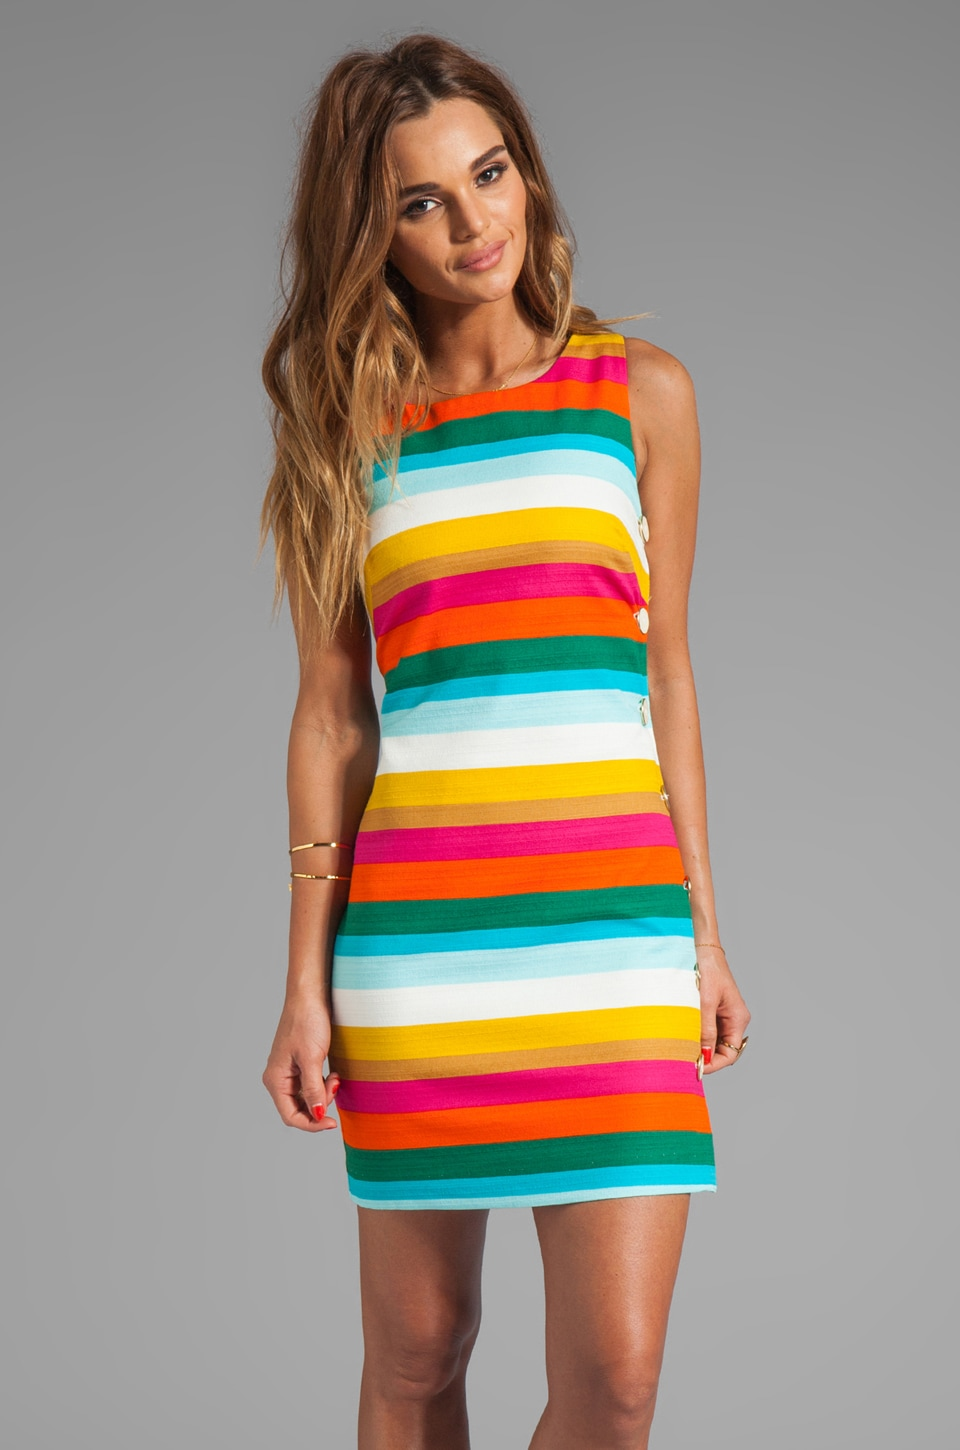 Trina Turk Skooter's Stripe Cotton Emmie Dress in Multi